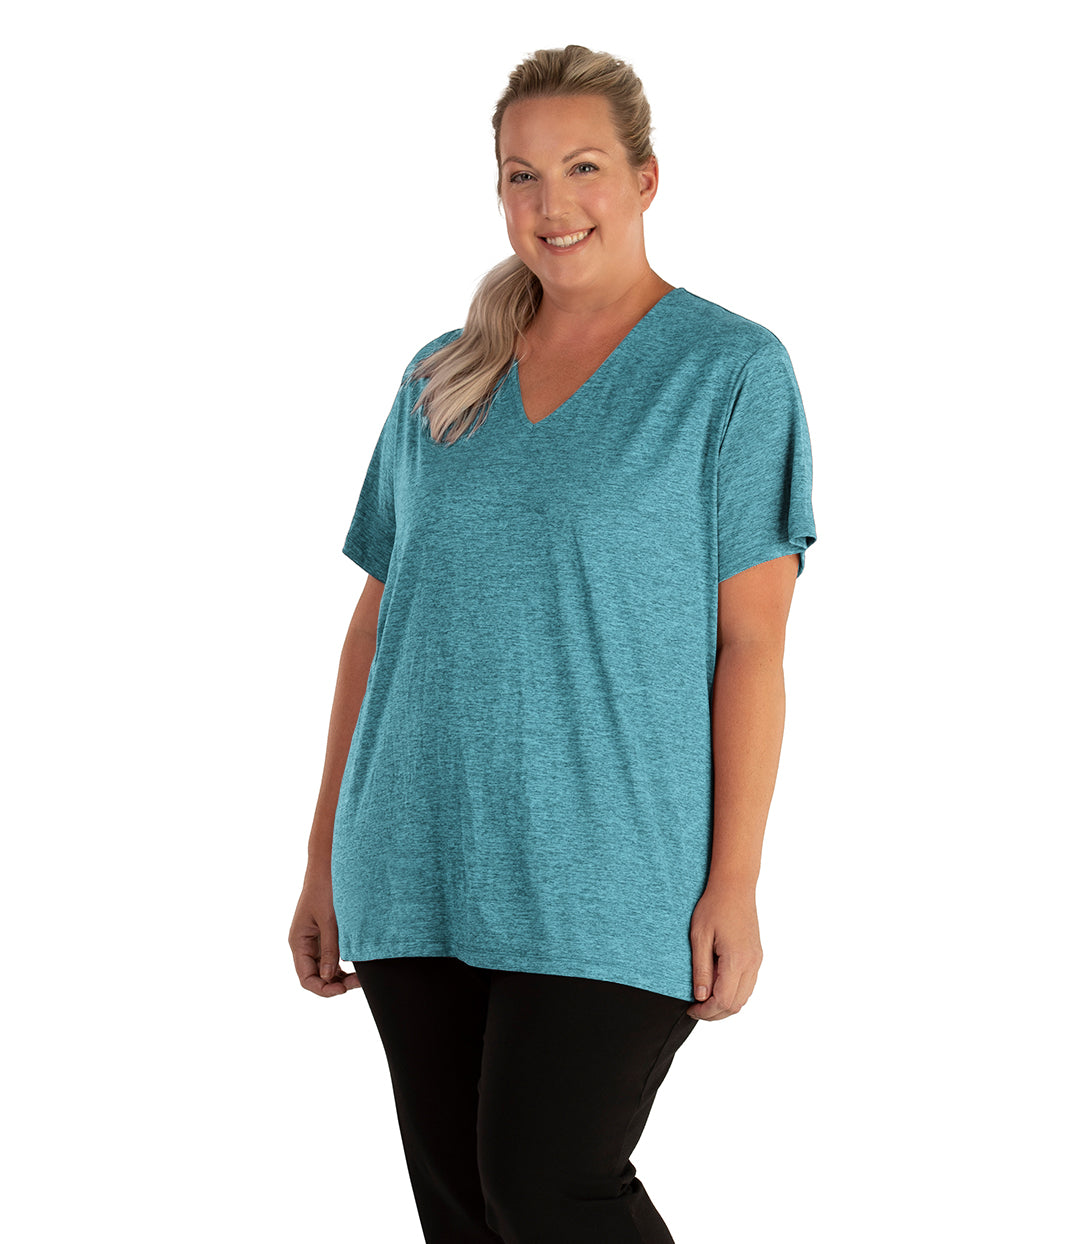 QuikLite V-Neck Short Sleeve Top-Tops Short Sleeve-Springtex-XL-Heather Deep Teal-JunoActive